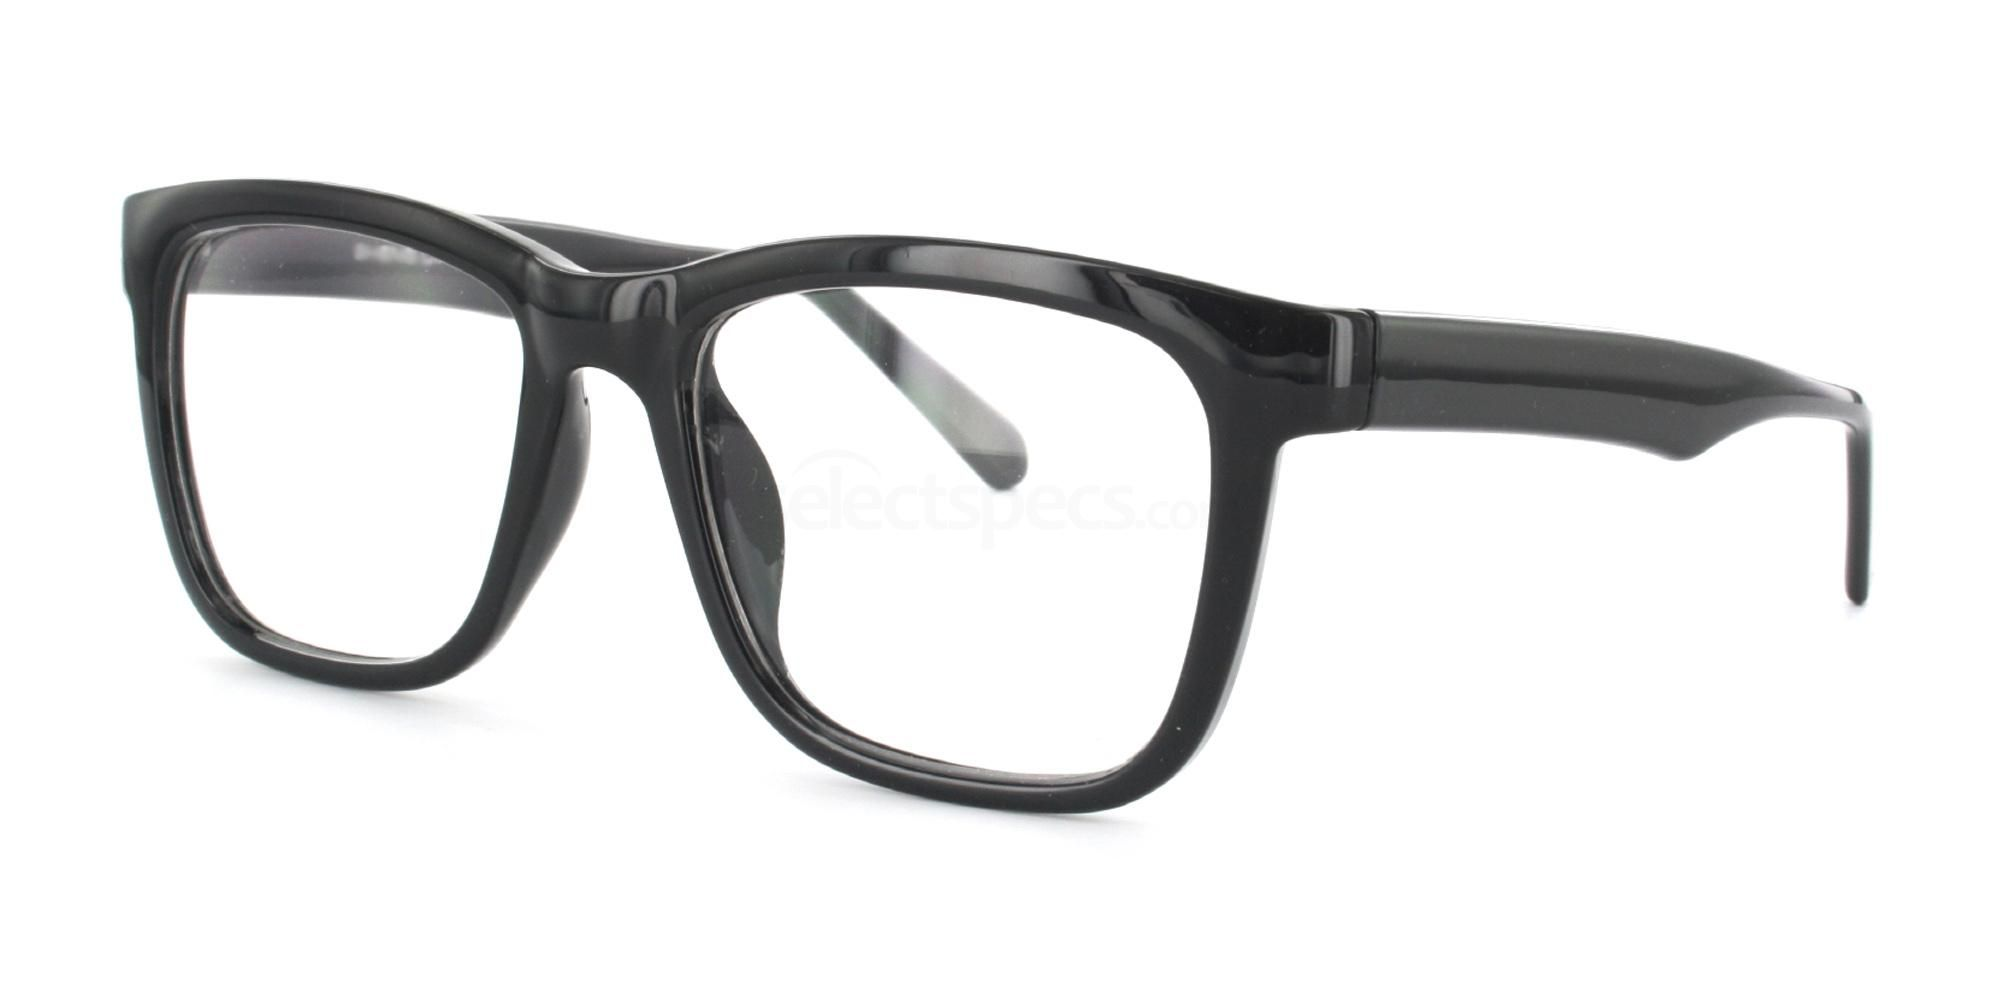 6db10ae1a3f0 Black thick rimmed glasses at SelectSpecs